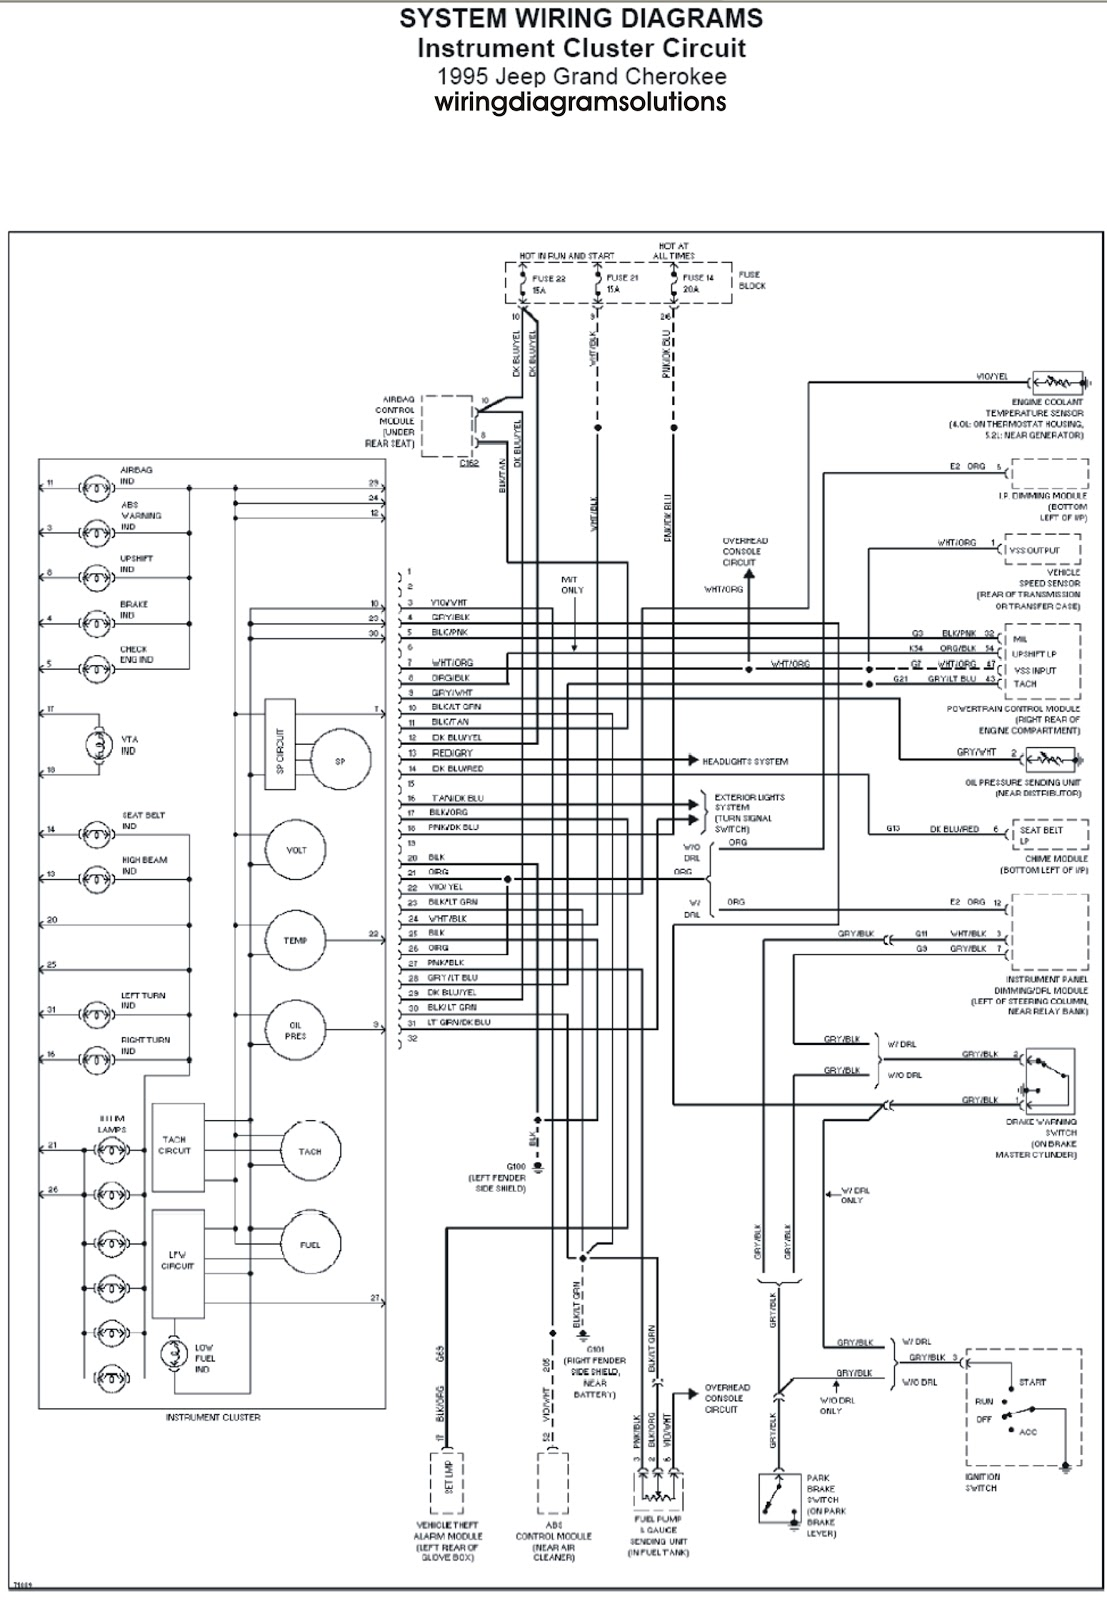 Miraculous Porsche 914 Electrical Relay Wiring Diagram In Addition Wiring Wiring 101 Akebretraxxcnl